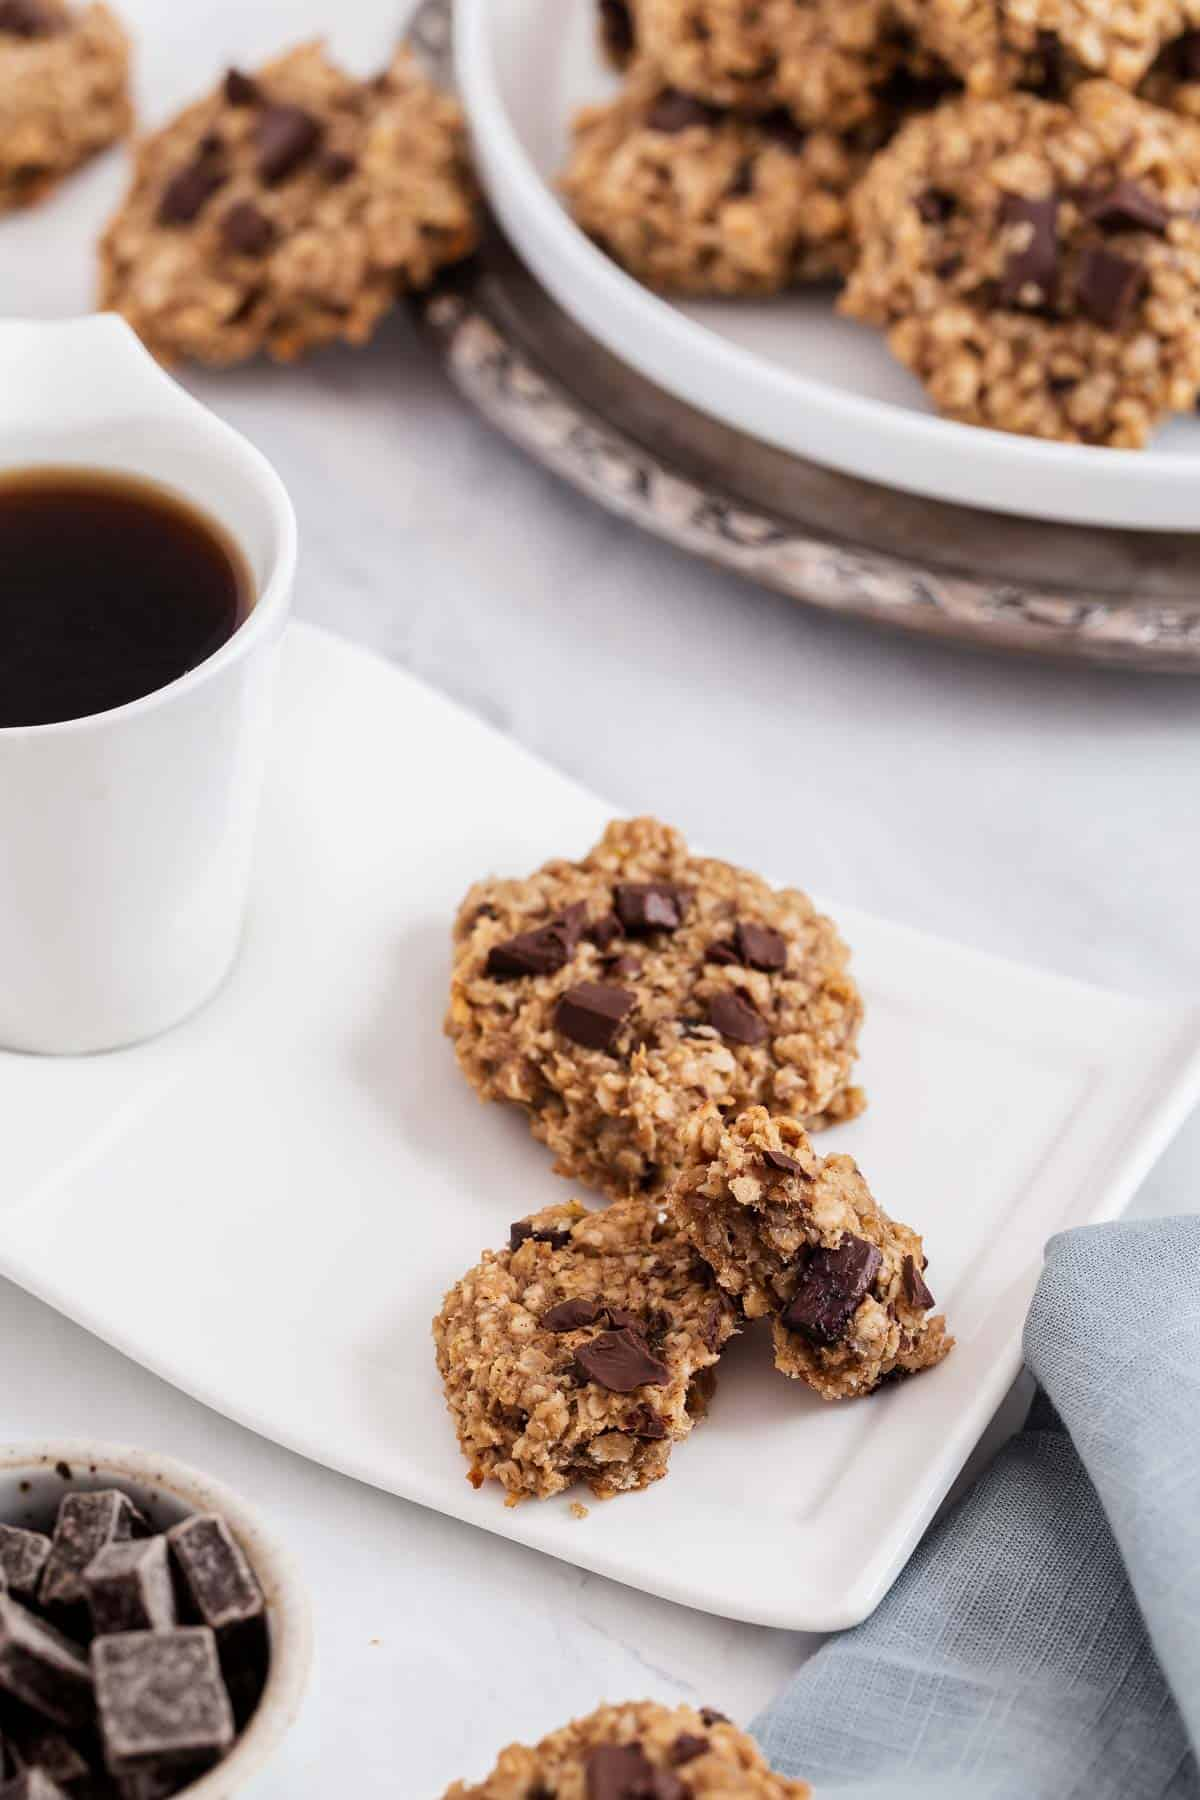 Oatmeal chocolate chunk cookies with a cup of coffee.